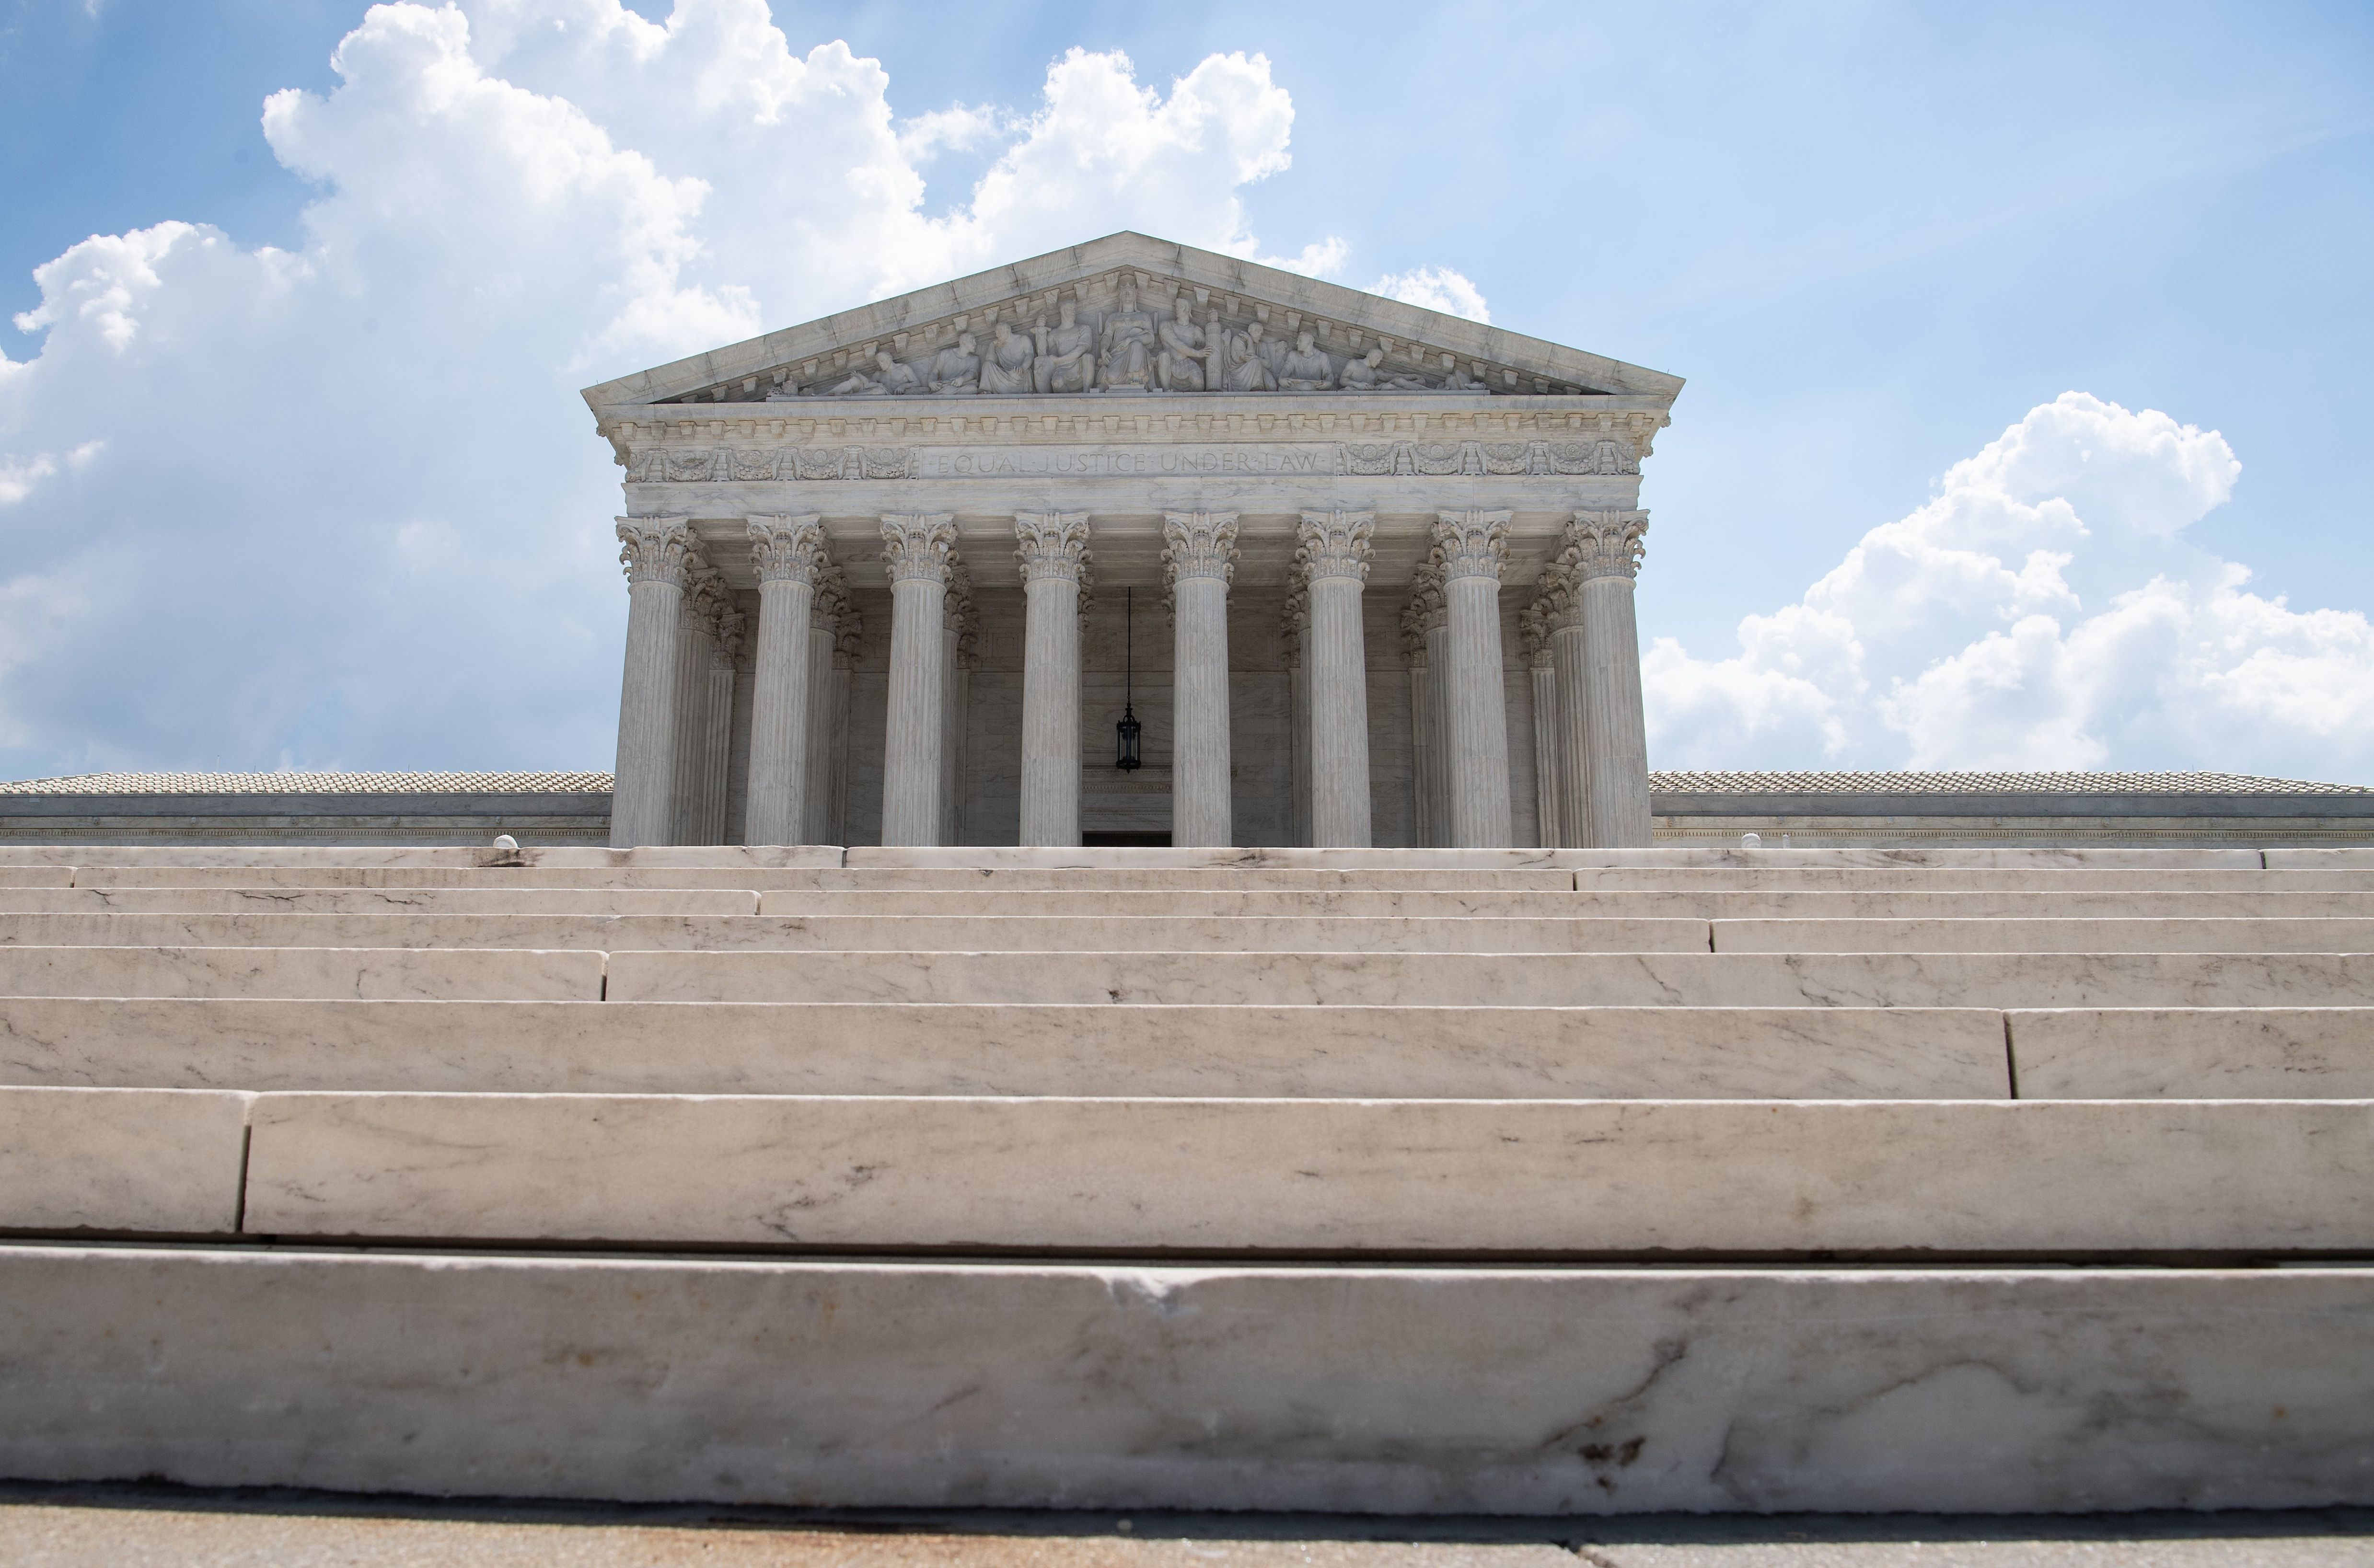 The Supreme Court as seen on June 27, 2019. (Nicholas Kamm/AFP/Getty Images)